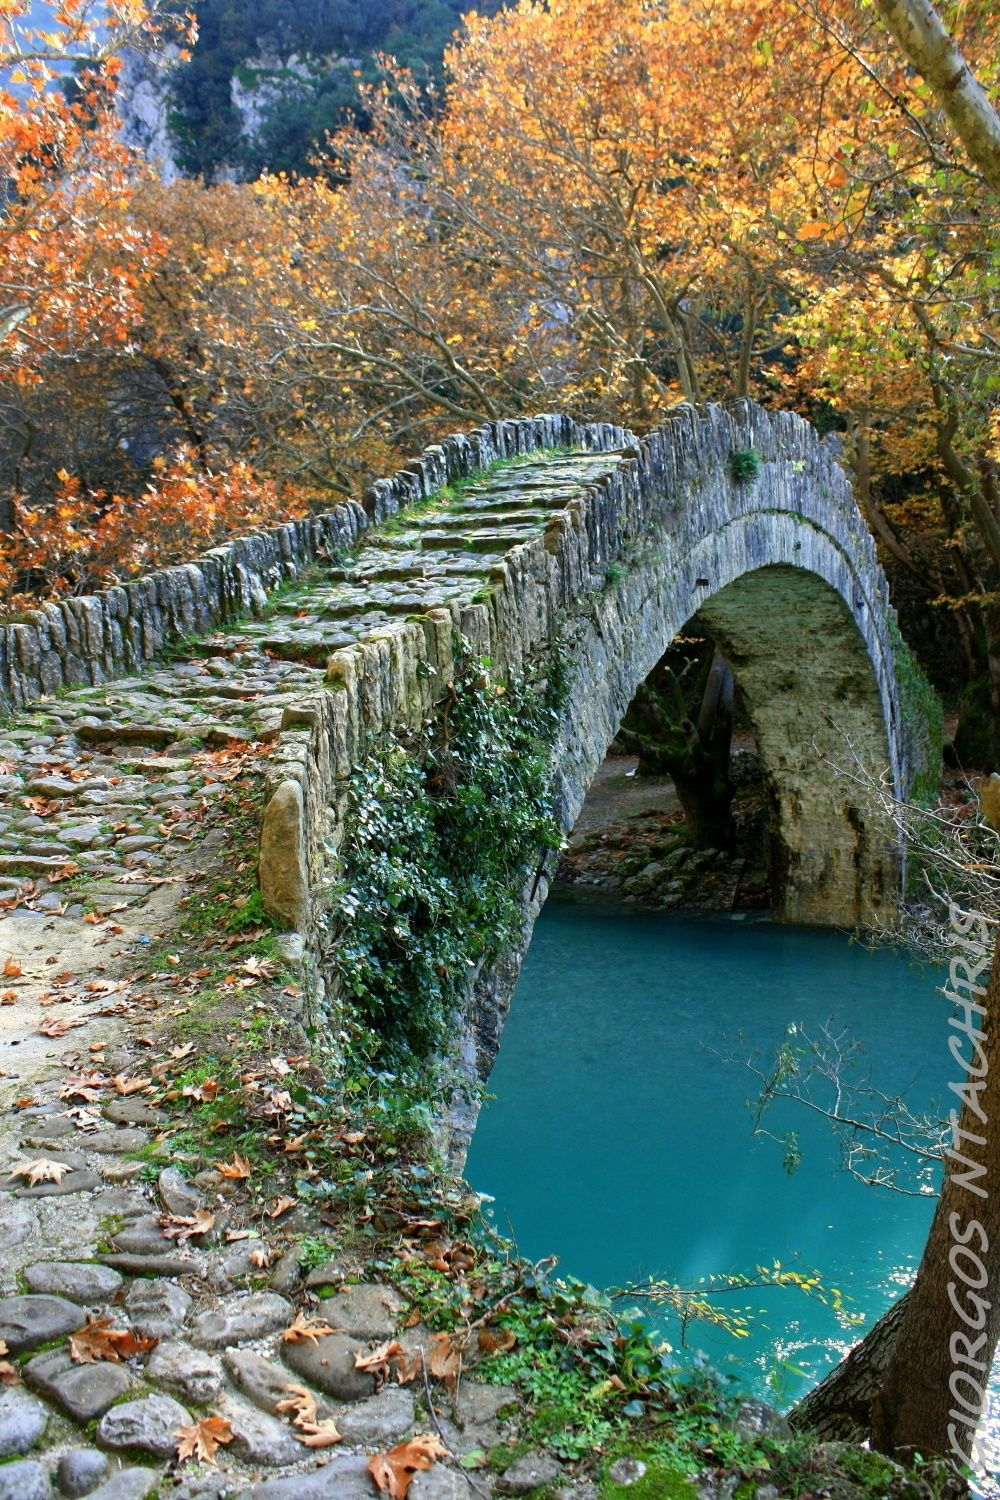 The Bridge of Klidoniabistas or Voidomatis is an arched stone bridge which has an opening 20 meters and a height of 9 meters. From the Byzantine period, the bridge is built and rebuilt to be completed in 1853 at the expense of Balkiz Khanum point ending the Vikos gorge, spent the considerable sum of 37,000 piastres. It joins the two banks of the river Voidomatis, where he got his second name and is excellent structure. Old residents moved through the bridge from West to Zagori Konitsa. The…